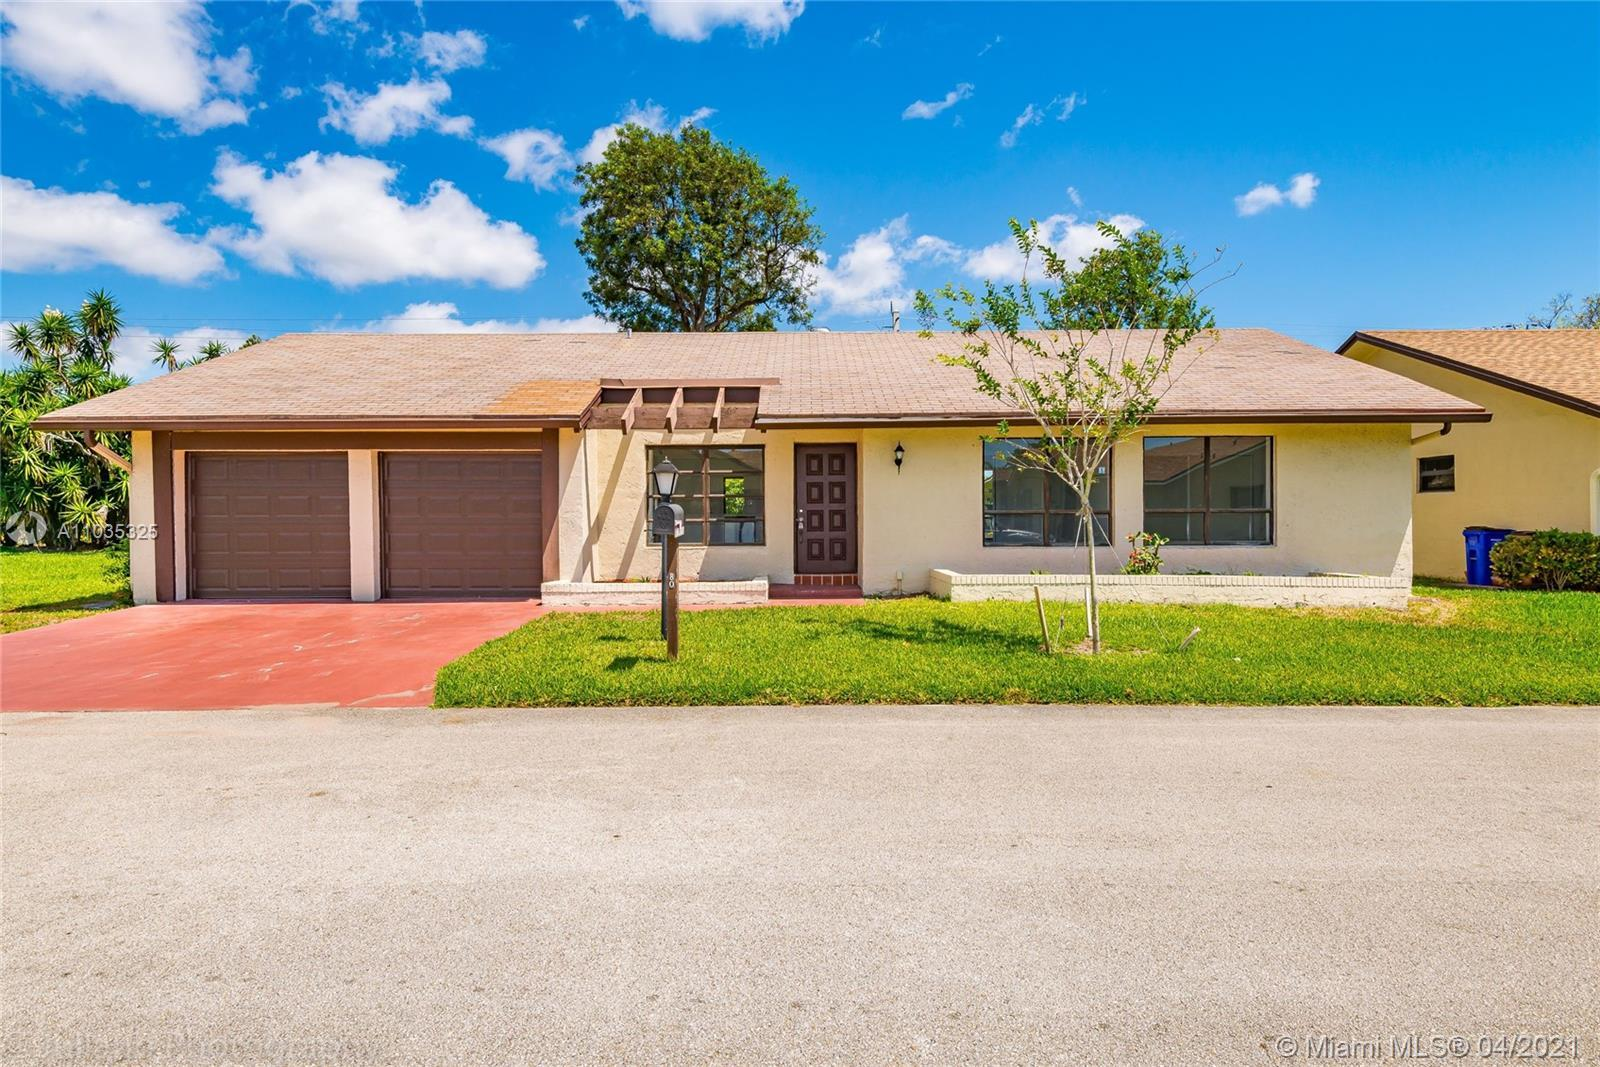 Rare opportunity to own this Turn Key, move-in ready 3 bed/2 bath, 2 car garage (THE ONLY 2 CAR GARA